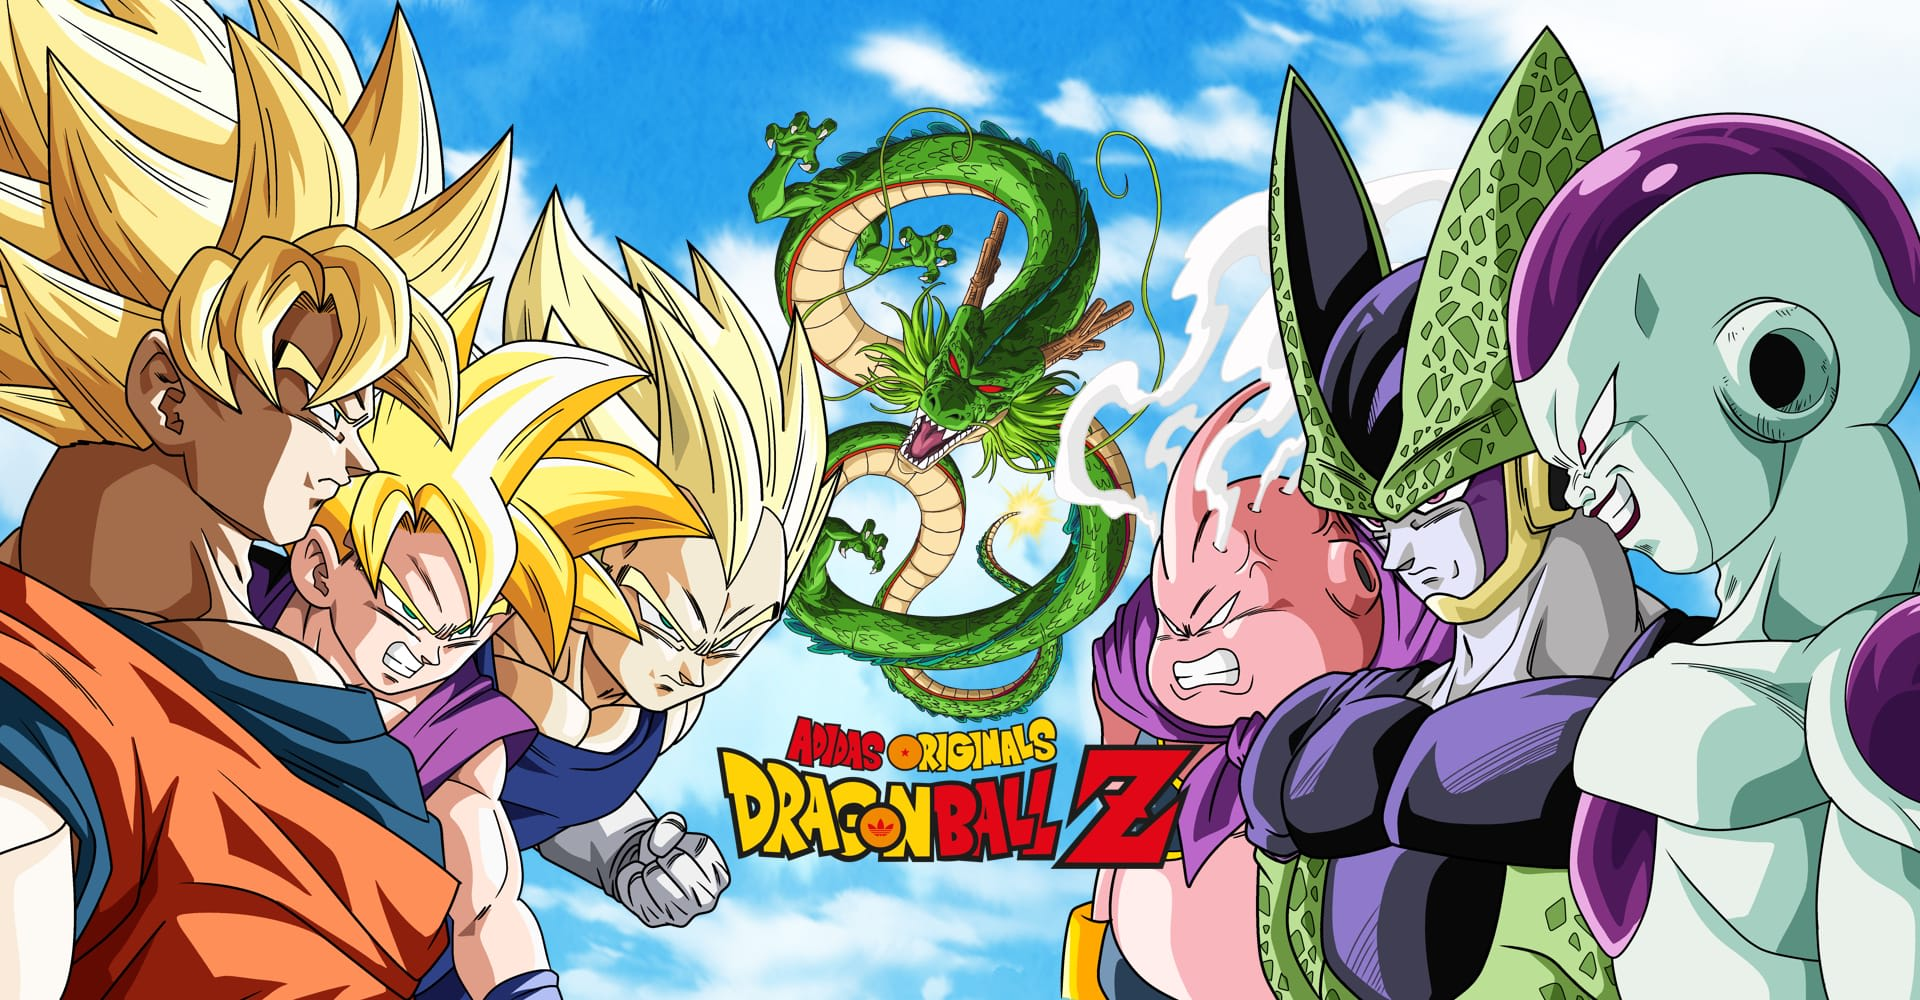 Adidas Originals Dragon Ball Z Die Neue Kollaboration Adidas De